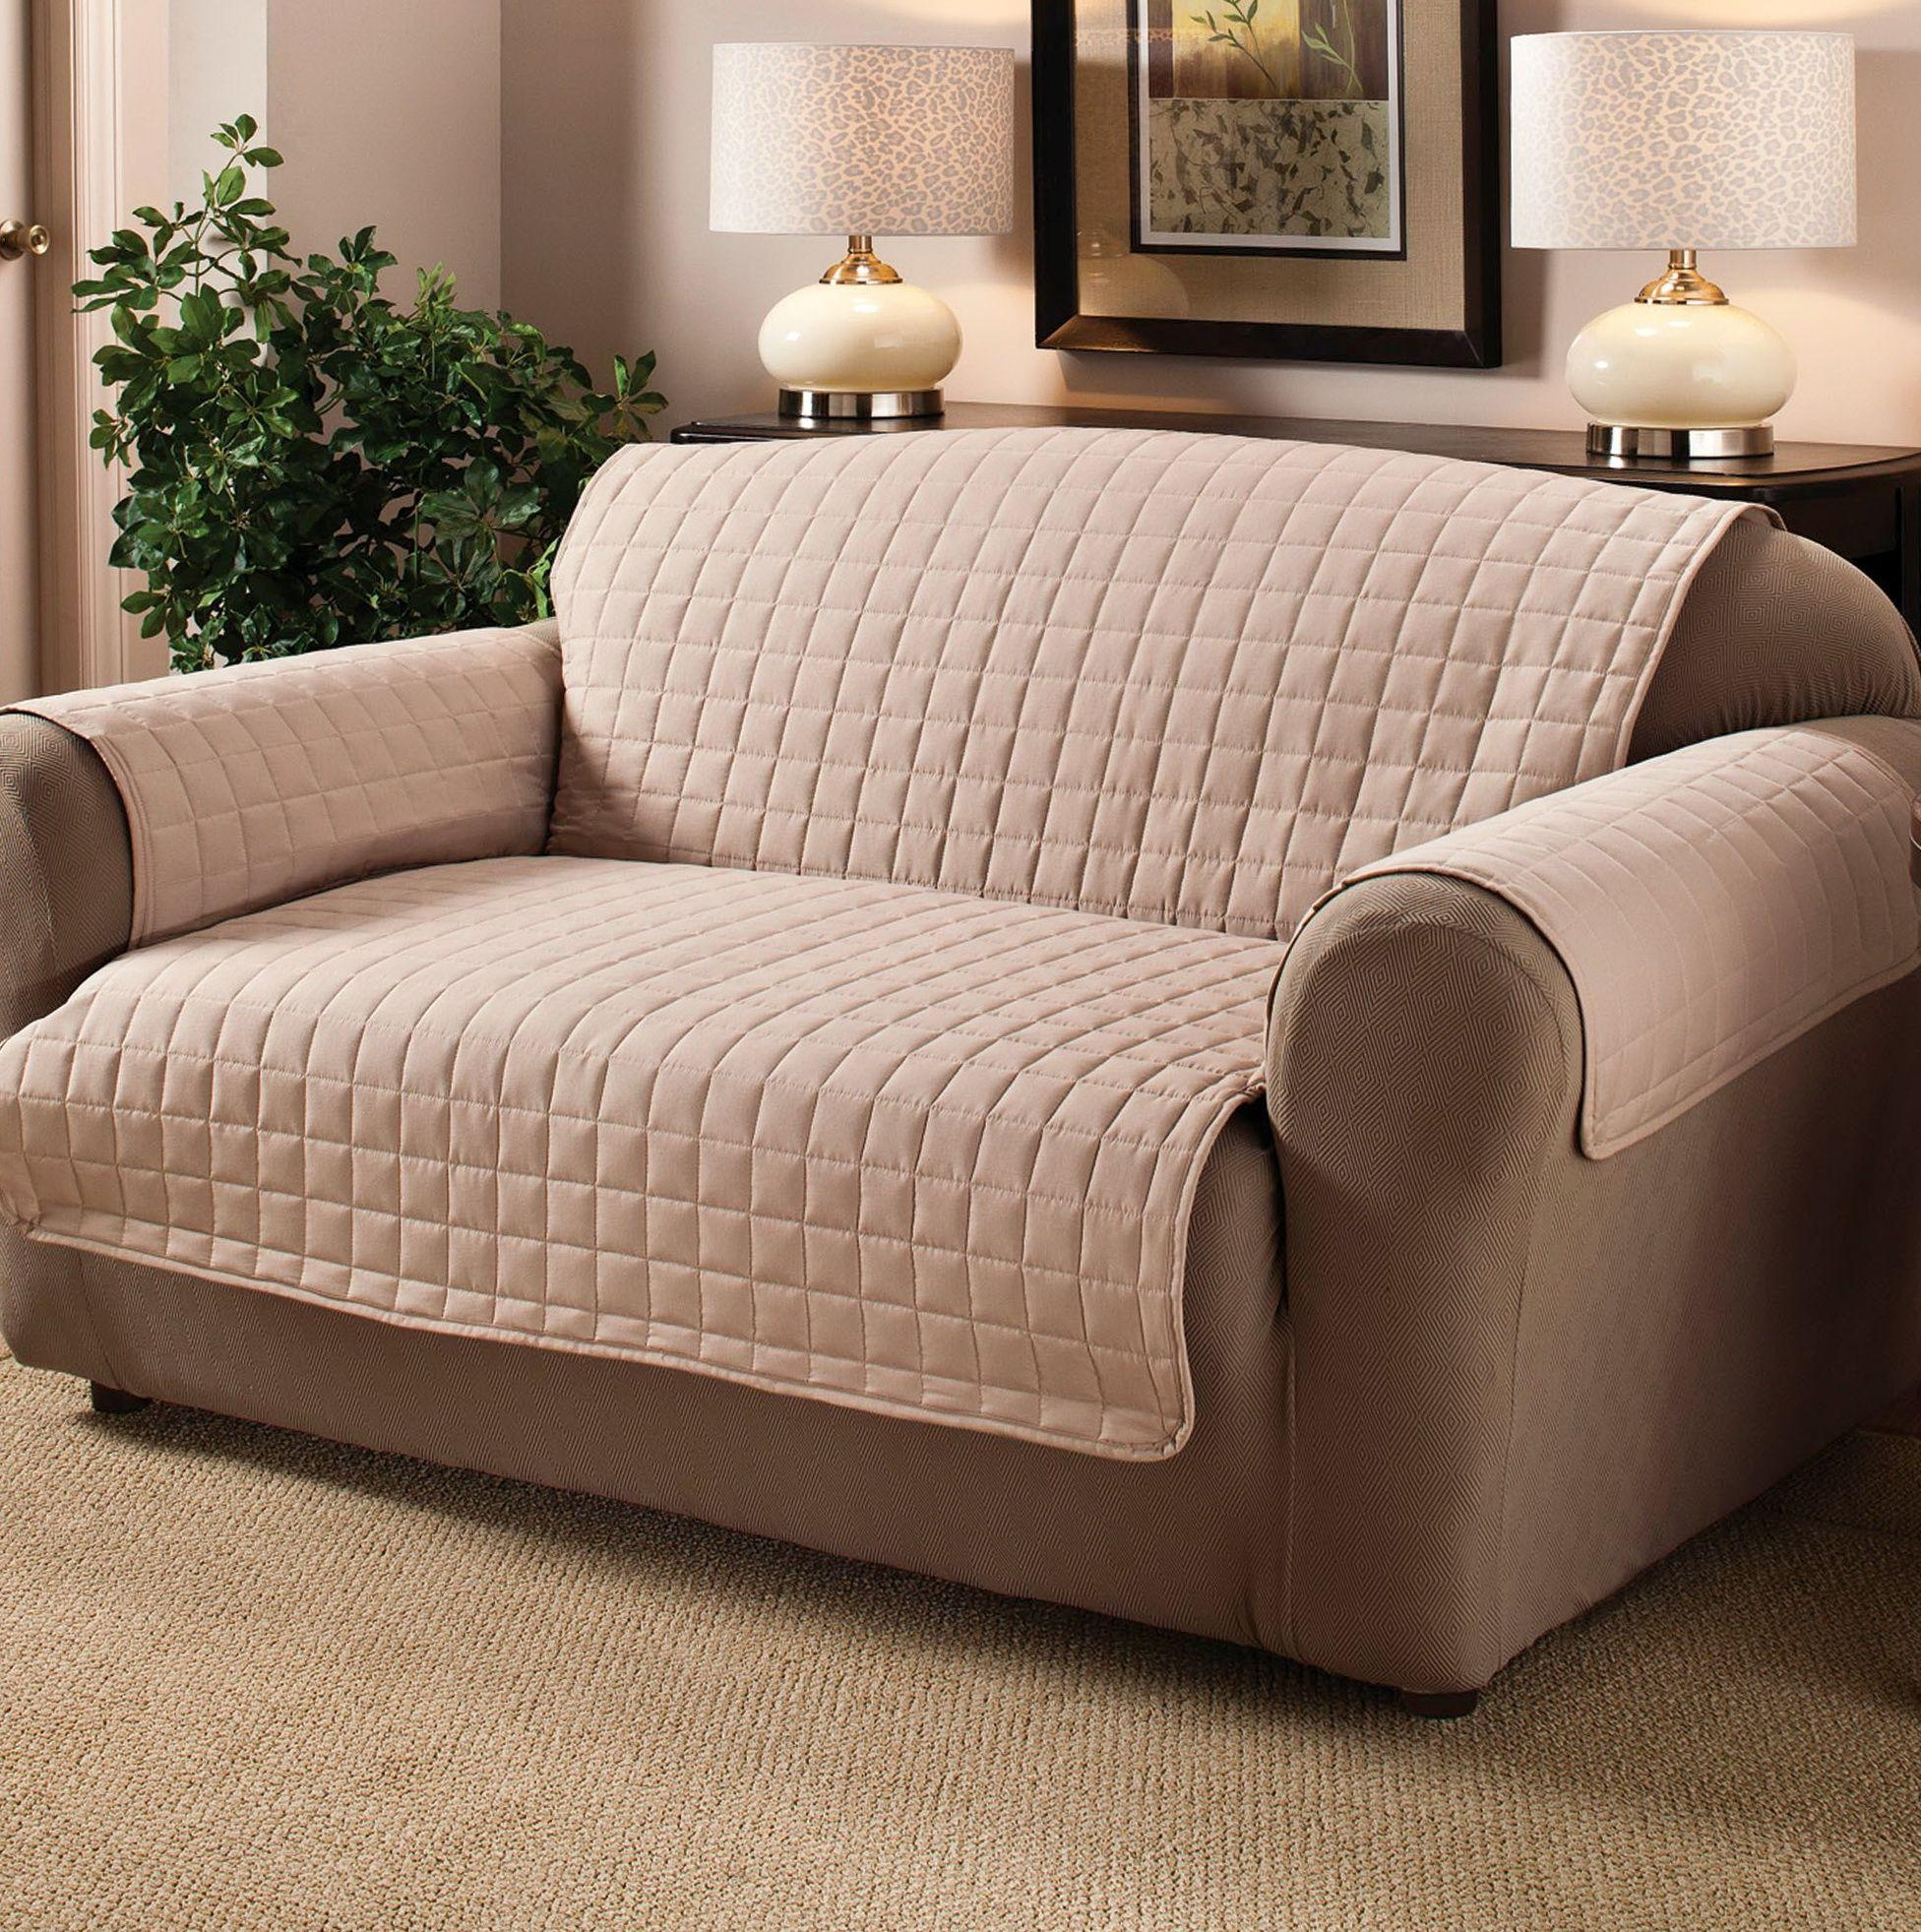 Furniture: Loveseat Slipcovers | Slipcovers For Couch And Loveseat Intended For Sofa Loveseat Slipcovers (View 14 of 25)